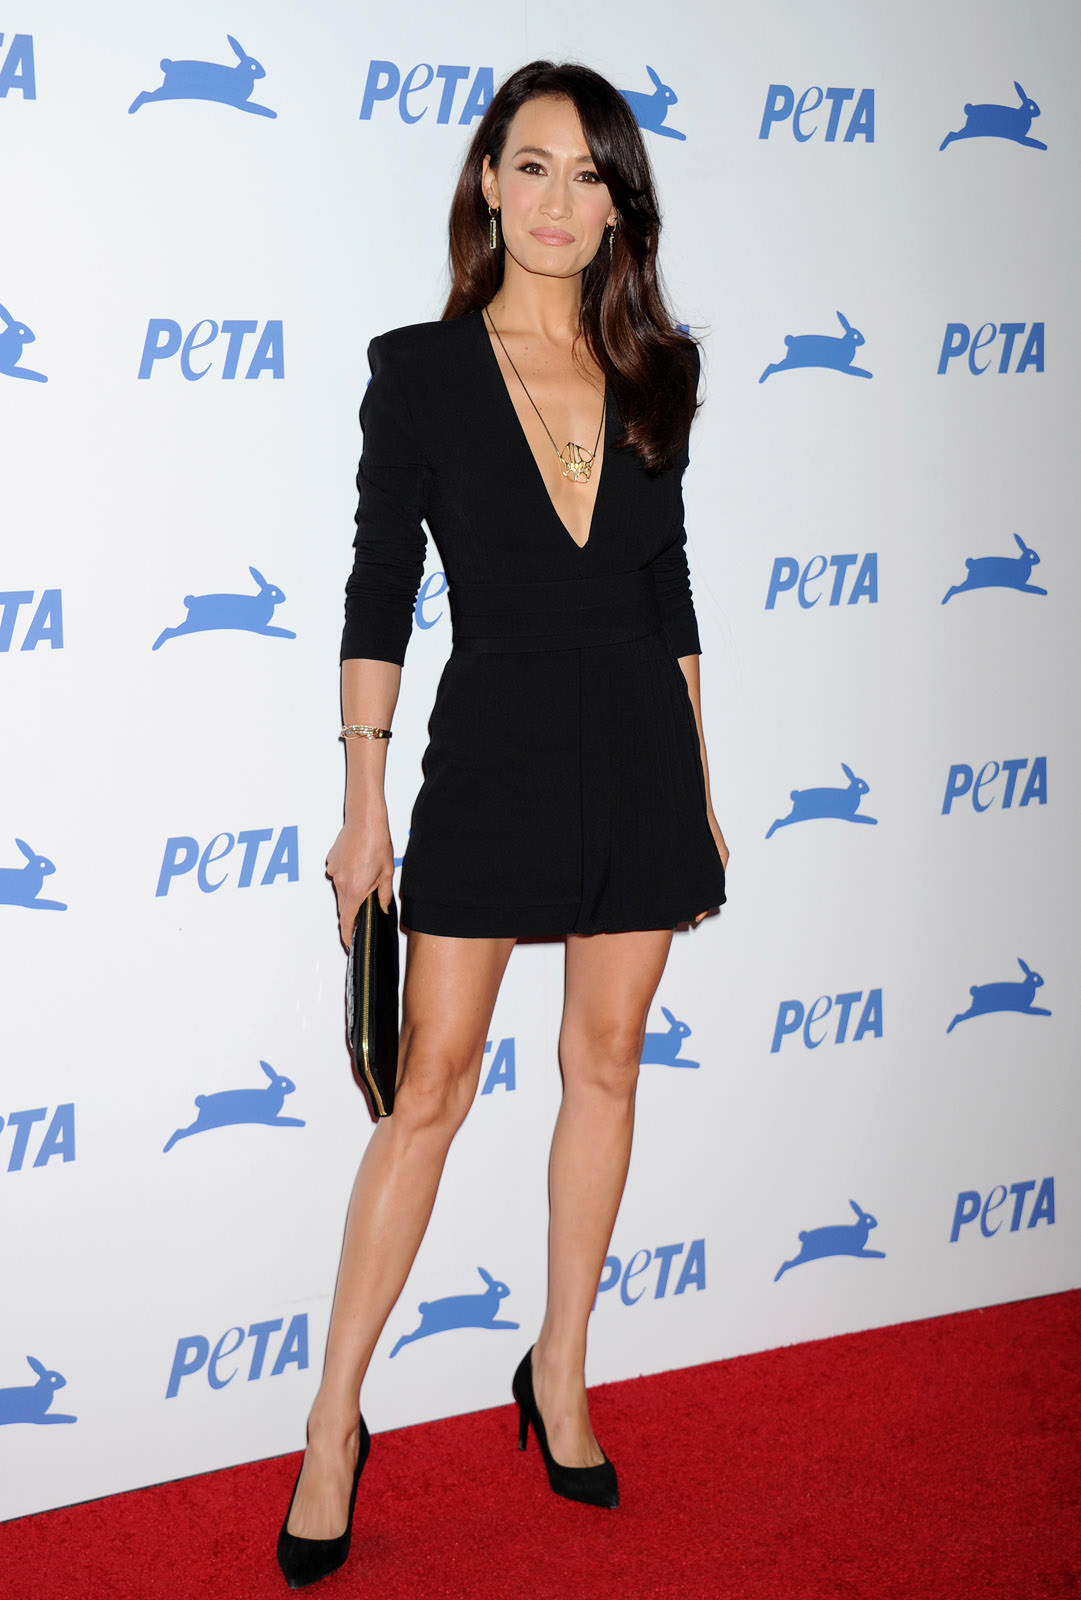 Maggie Q Photo Gallery